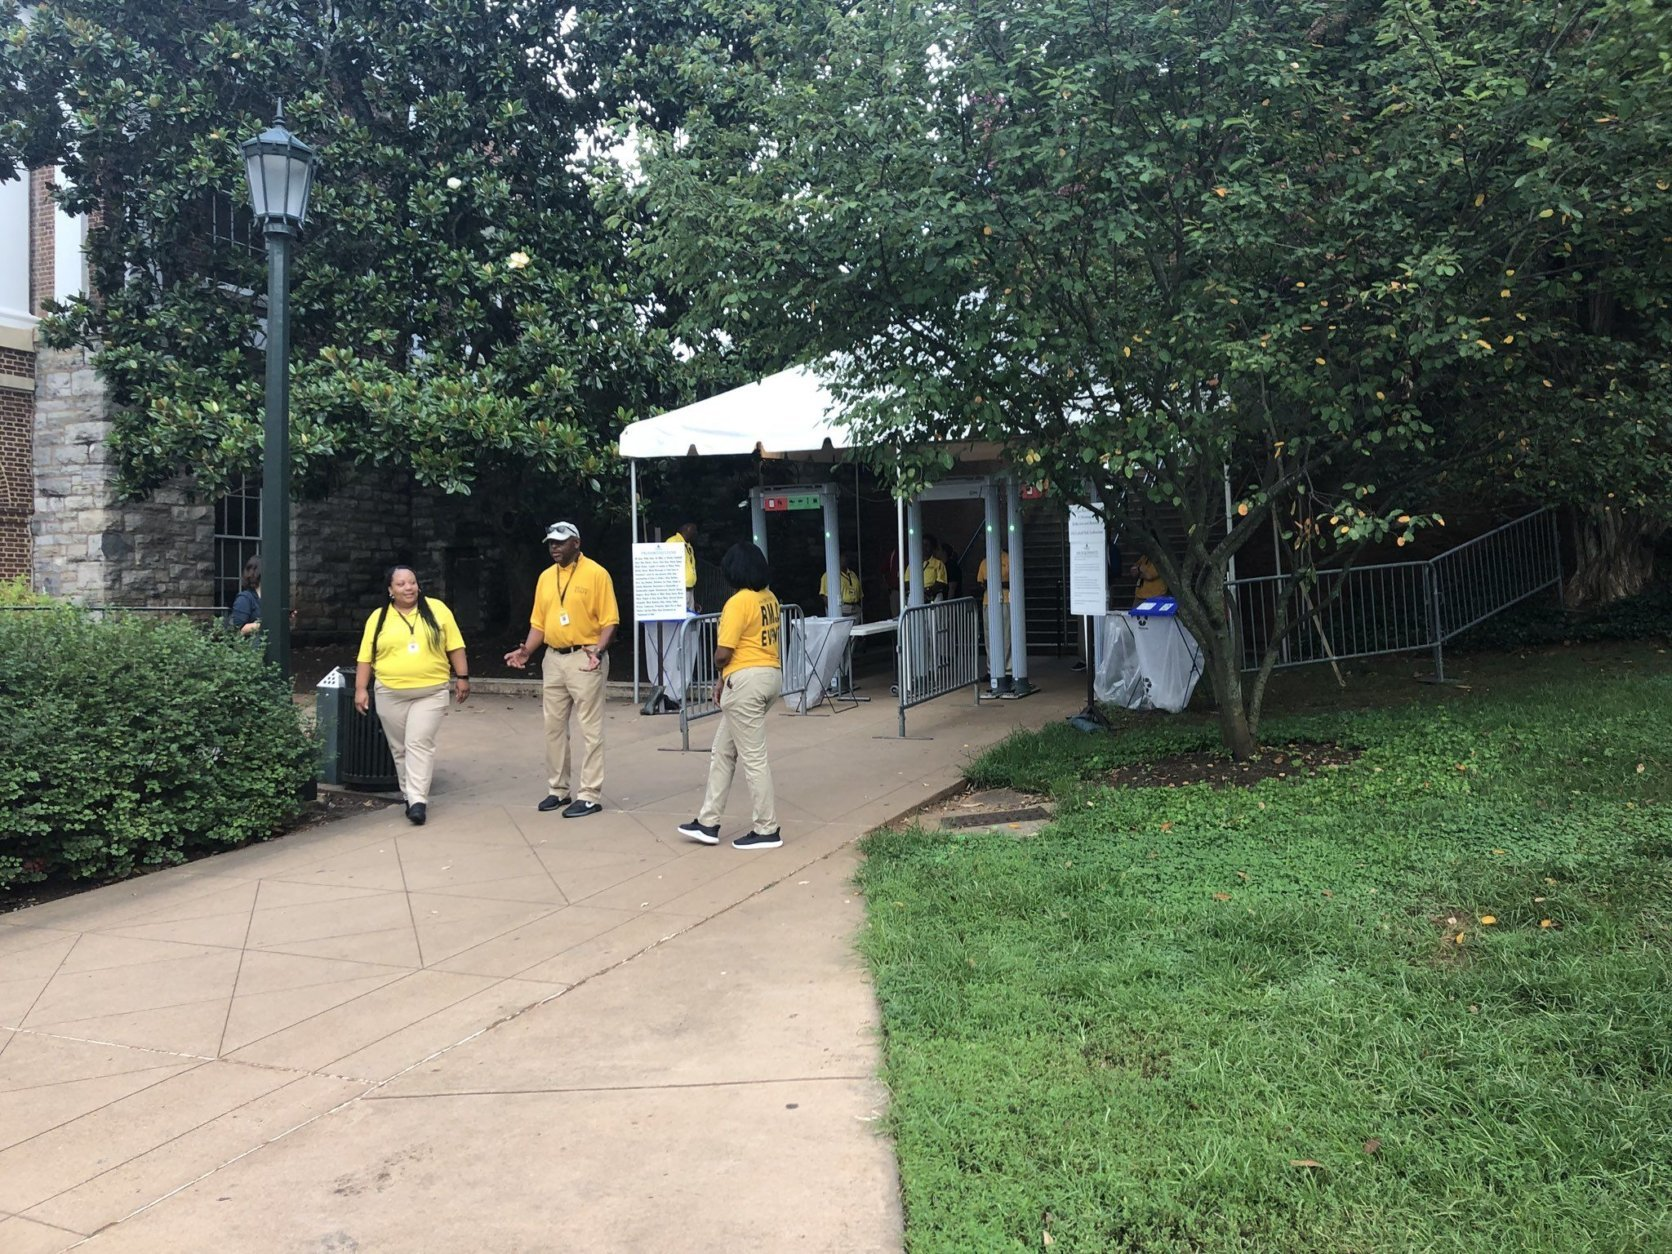 """A security checkpoint is seen near the amphitheater for Saturday morning's """"The Hope that Summons Us"""" event at the University of Virginia. It comes one year after white supremacists marched through the Grounds with tiki torches, and a day before anniversary of Heather Heyer's death. (WTOP/Max Smith)"""